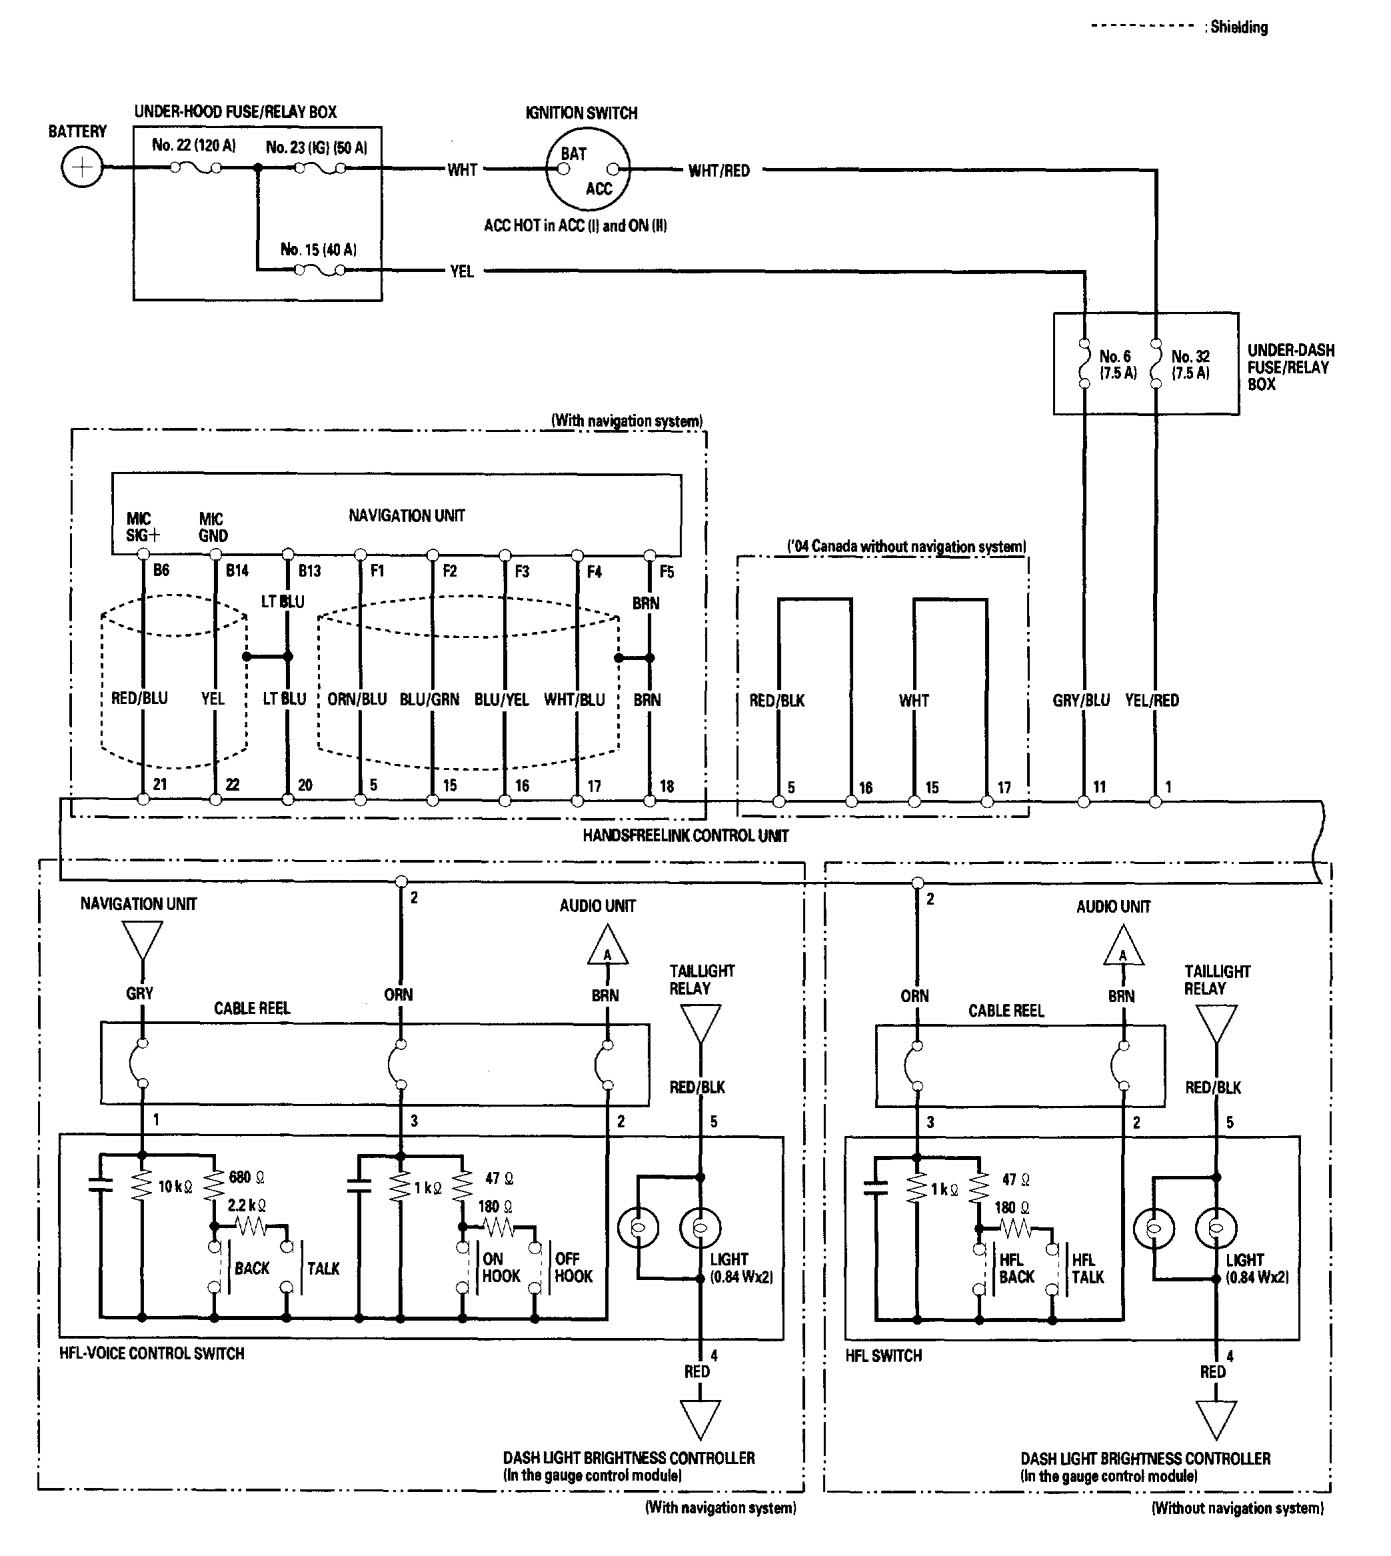 hight resolution of 2006 acura tl wiring diagram wiring diagram data todayacura tl 2006 wiring diagram wiring diagram database